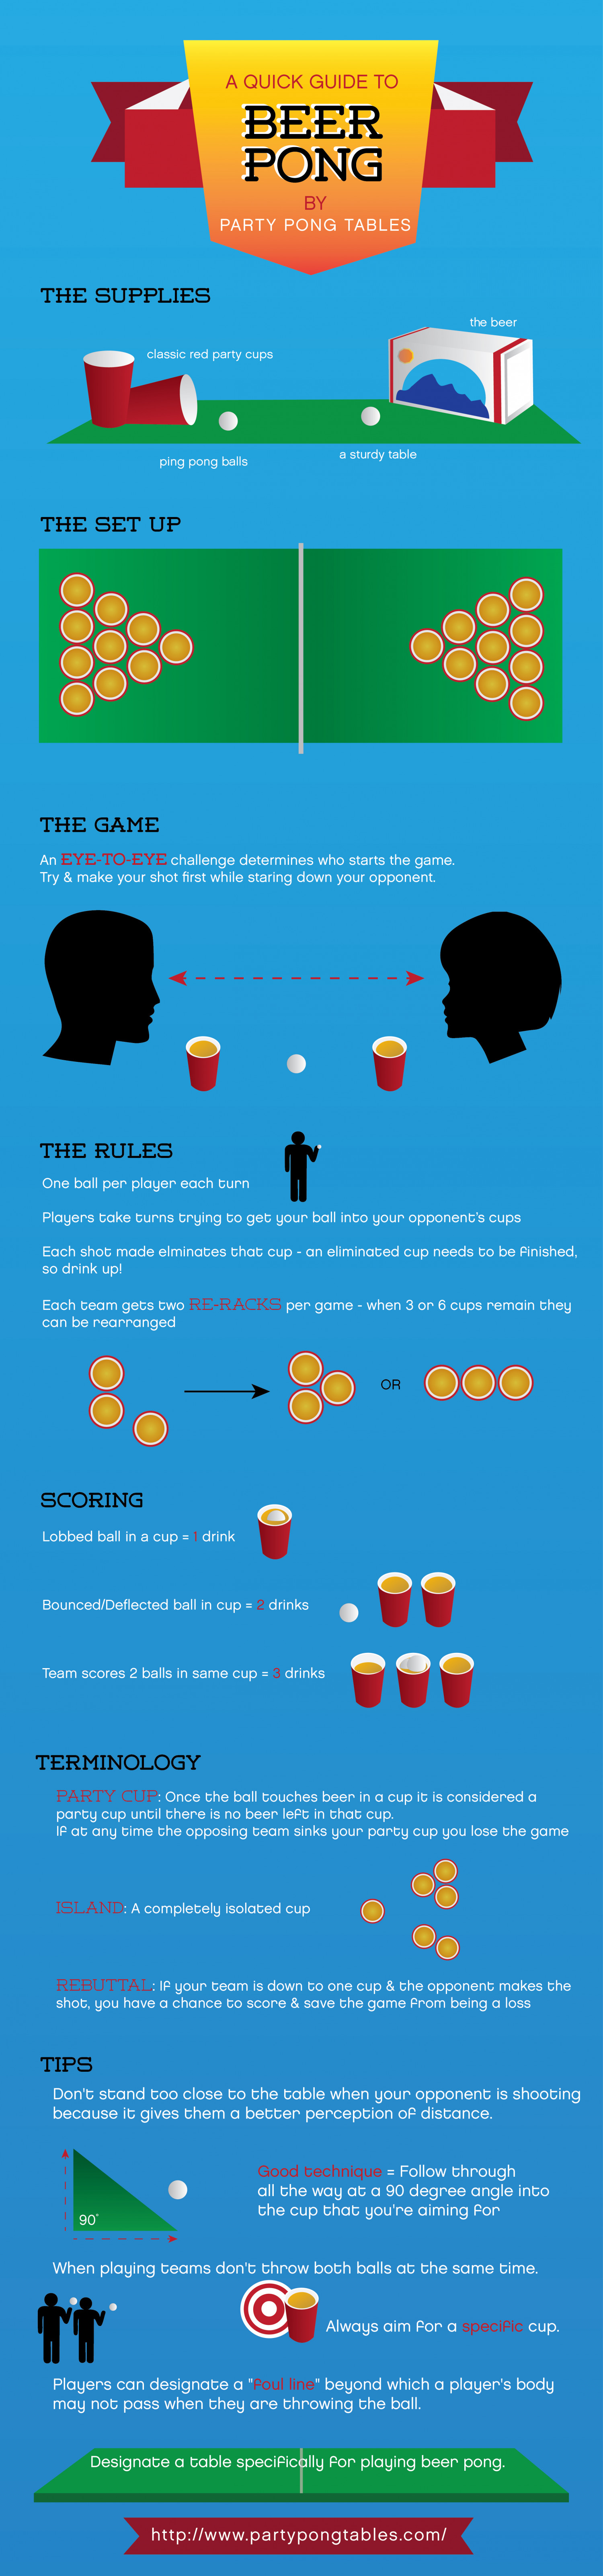 A Quick Guide to Beer Pong Infographic